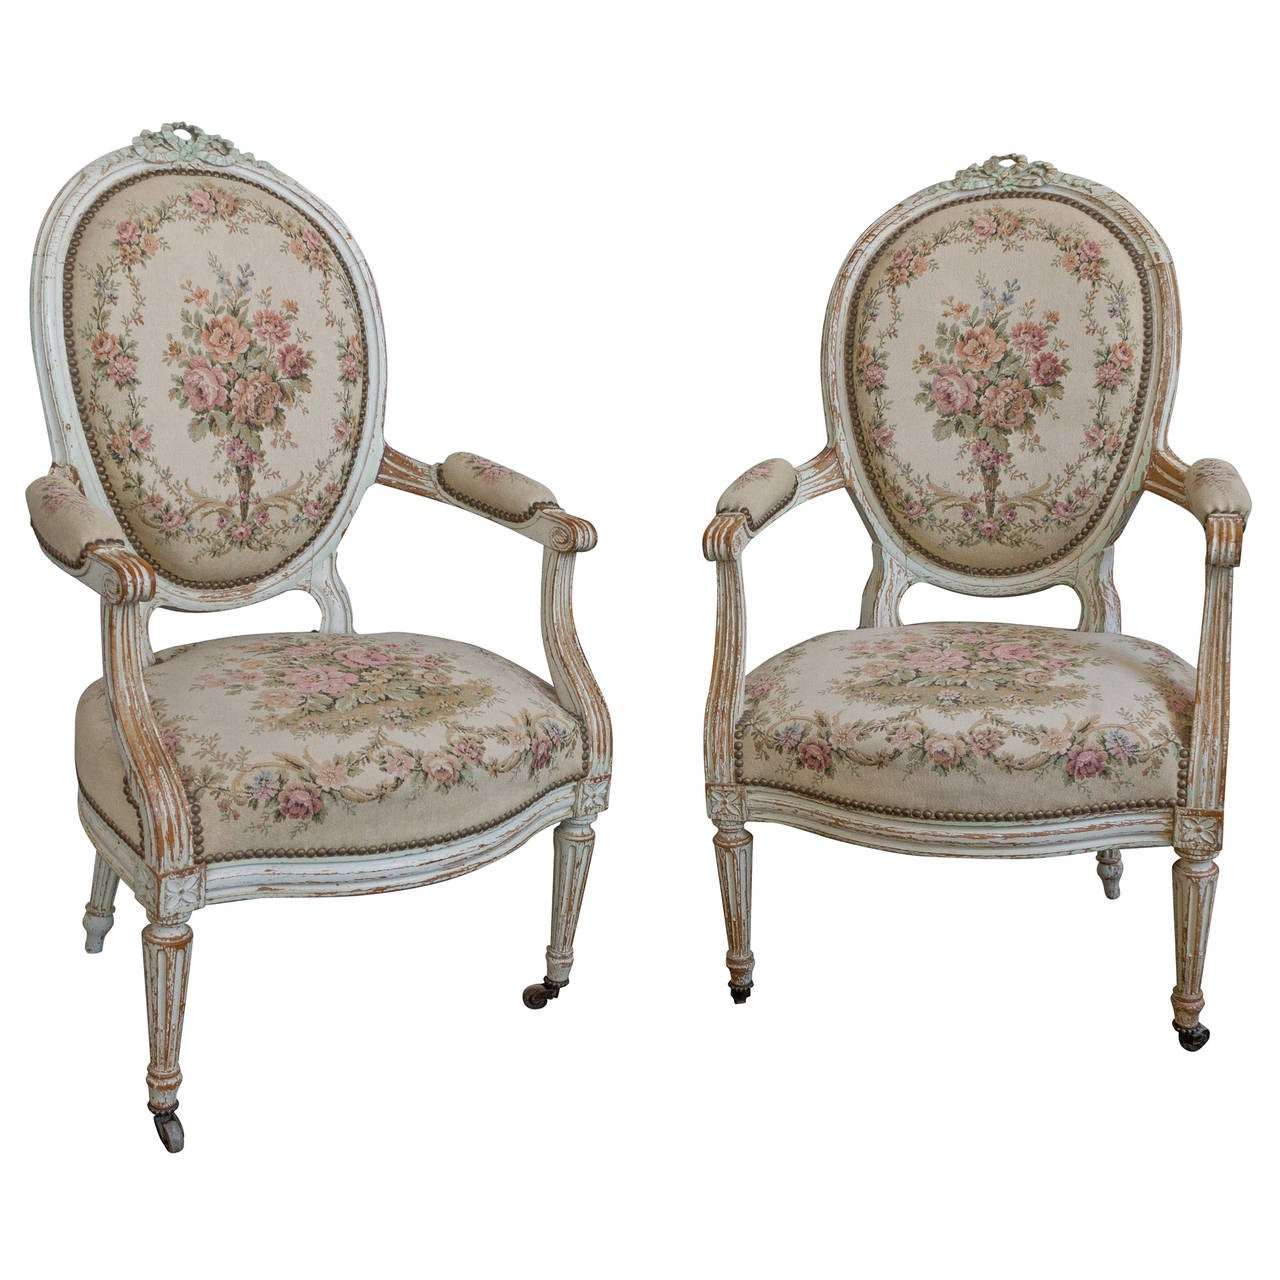 Pair of french 19th century louis xvi style armchairs in petit point fabric for sale at 1stdibs - Louis th chairs ...